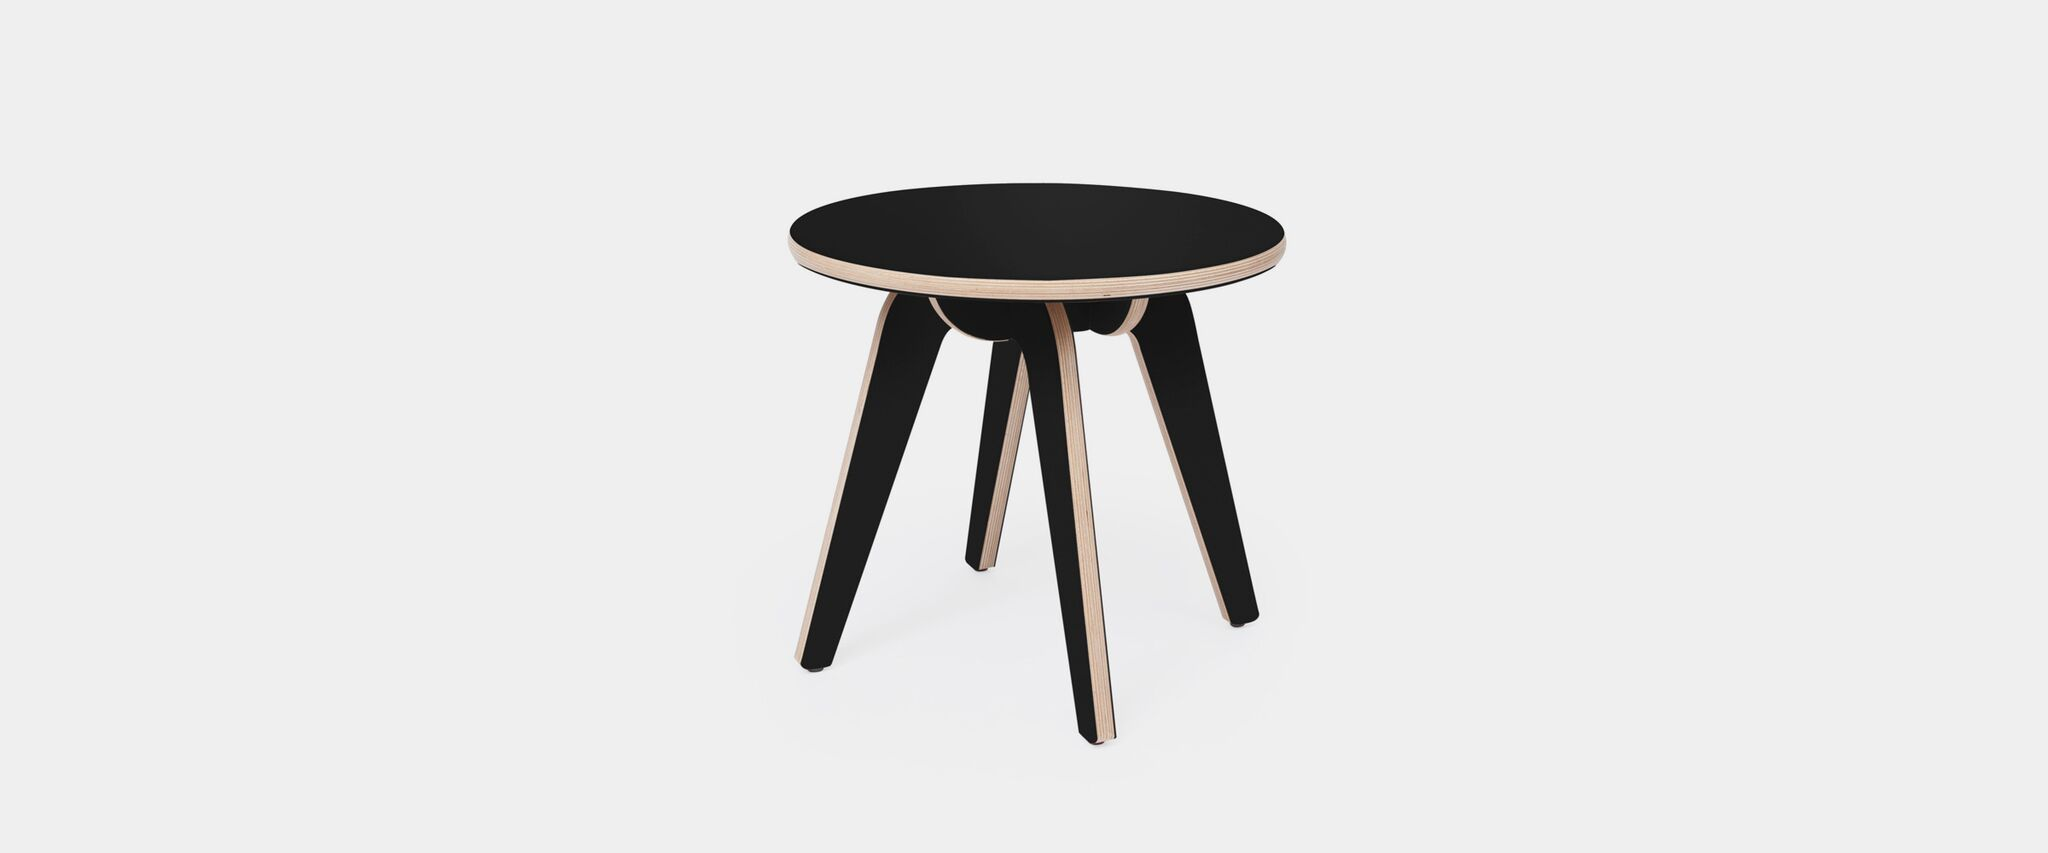 Hue-Side-Table-black_WIDE-B_preview.jpeg